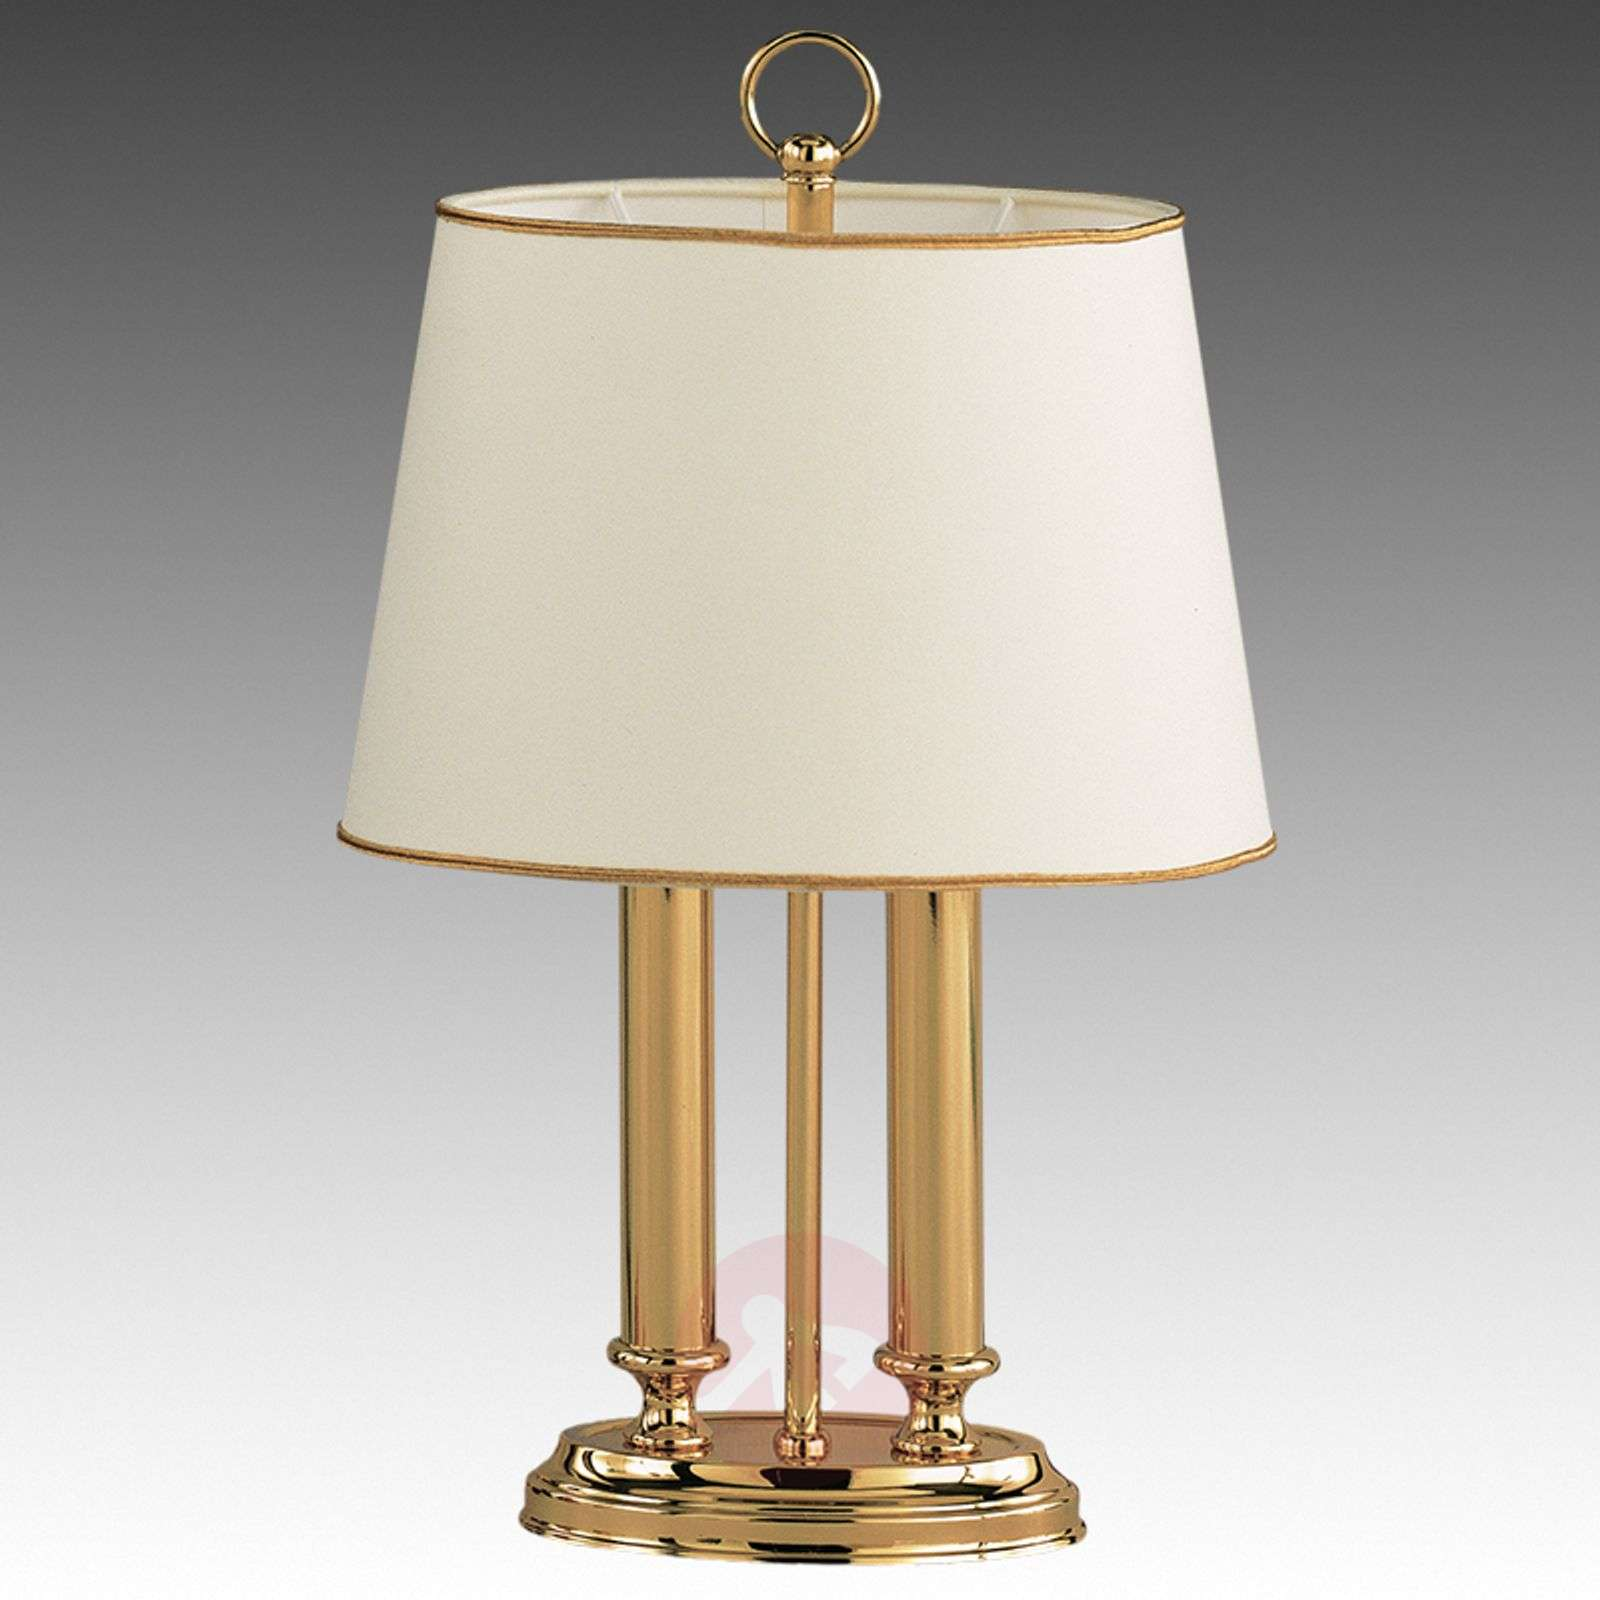 Exclusive table lamp Queen mini, brass-4002133-01